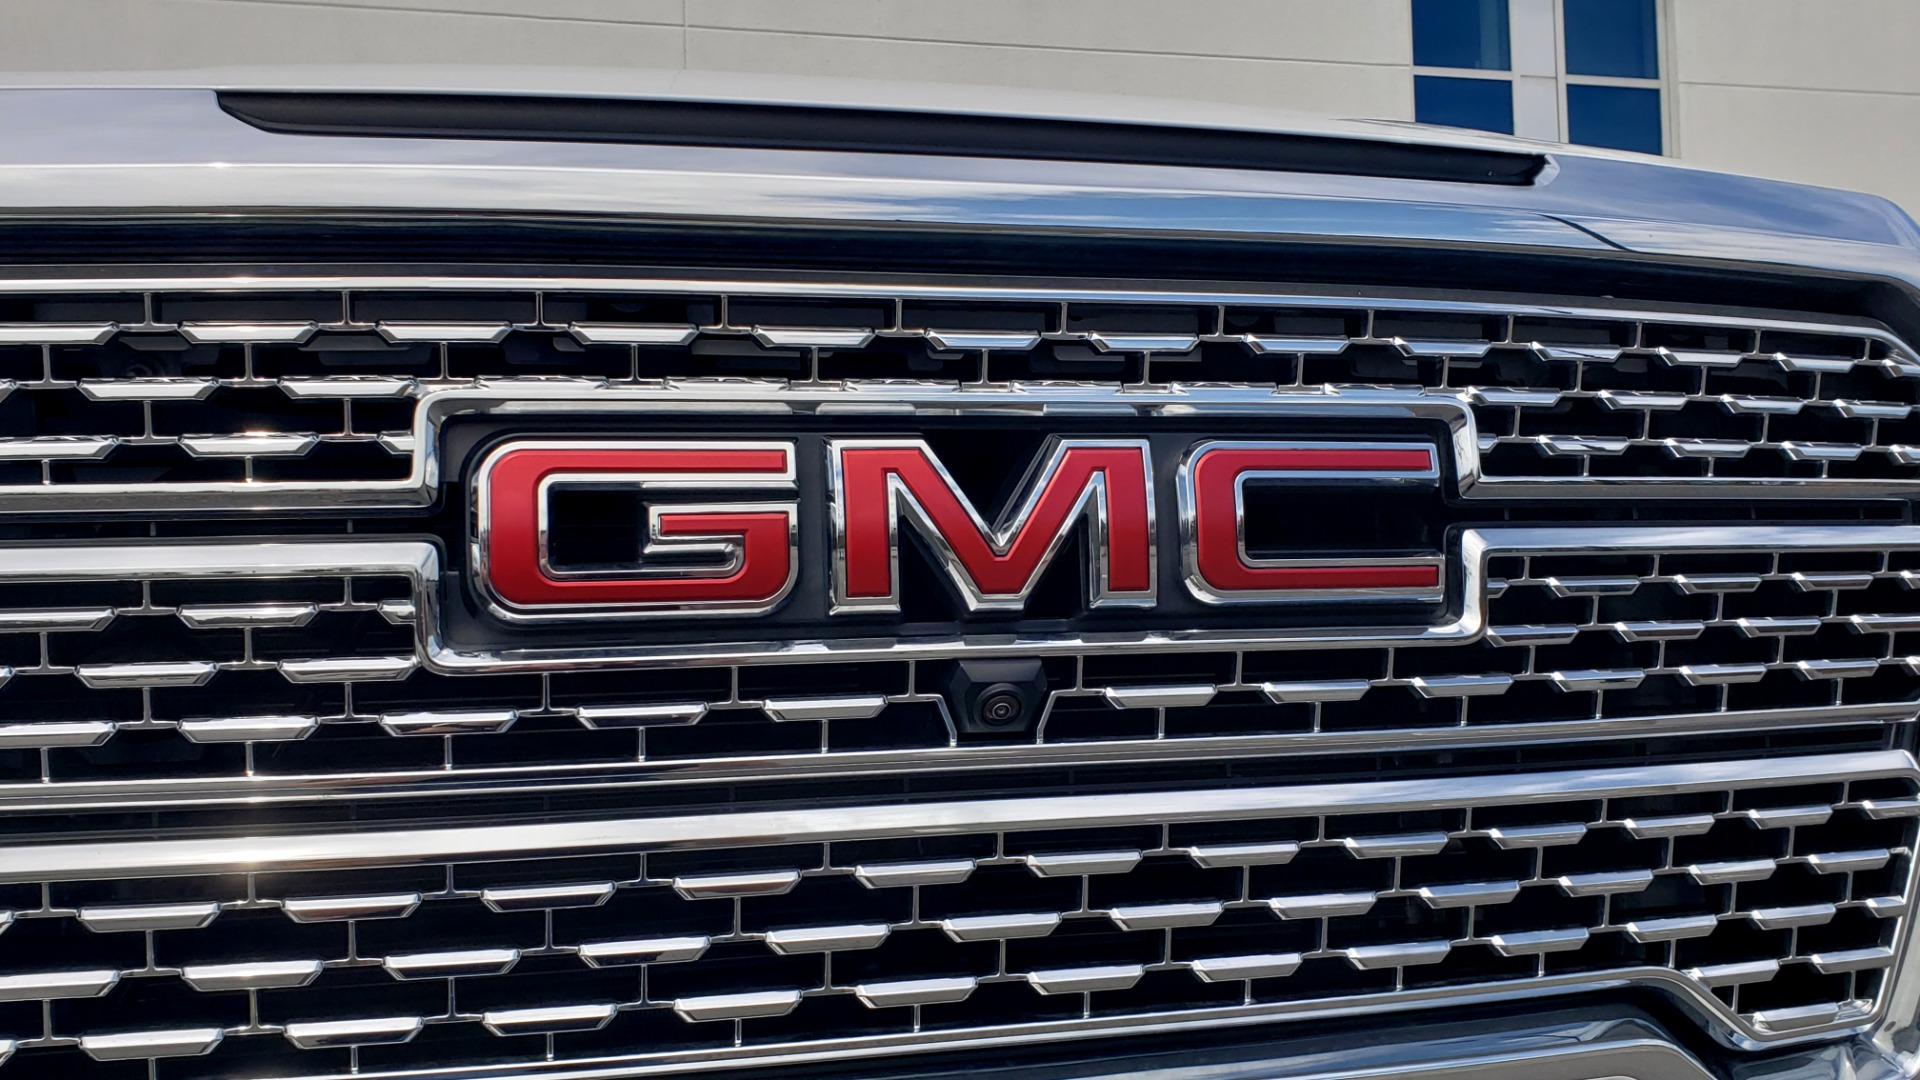 Used 2020 GMC SIERRA 1500 DENALI 4X4 CREWCAB 6.2L V8 / TECH / NAV / SUNROOF / DRVR ALERT II for sale Sold at Formula Imports in Charlotte NC 28227 23